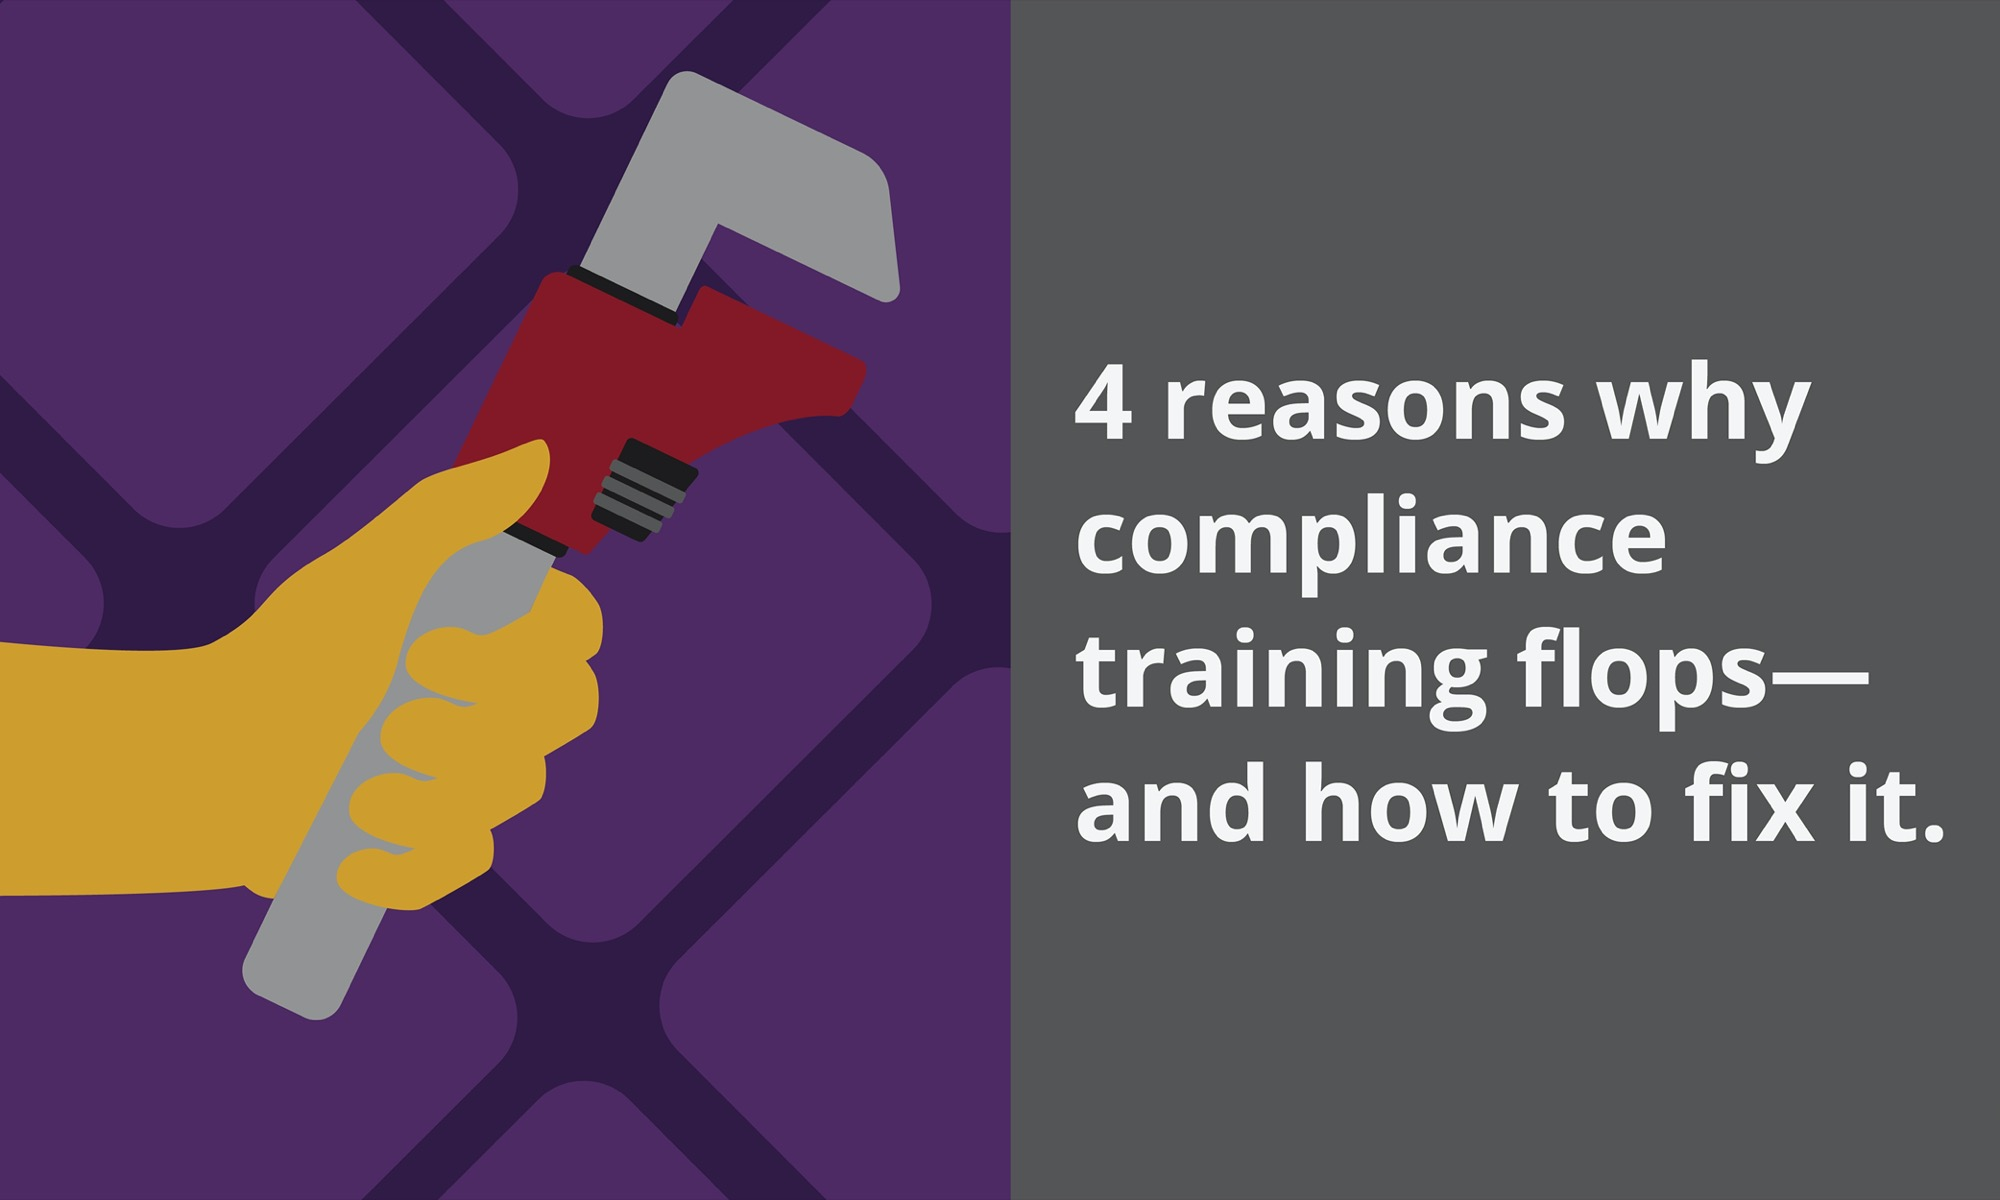 [Blog header] 4 reasons why compliance training flops—and how to fix it.